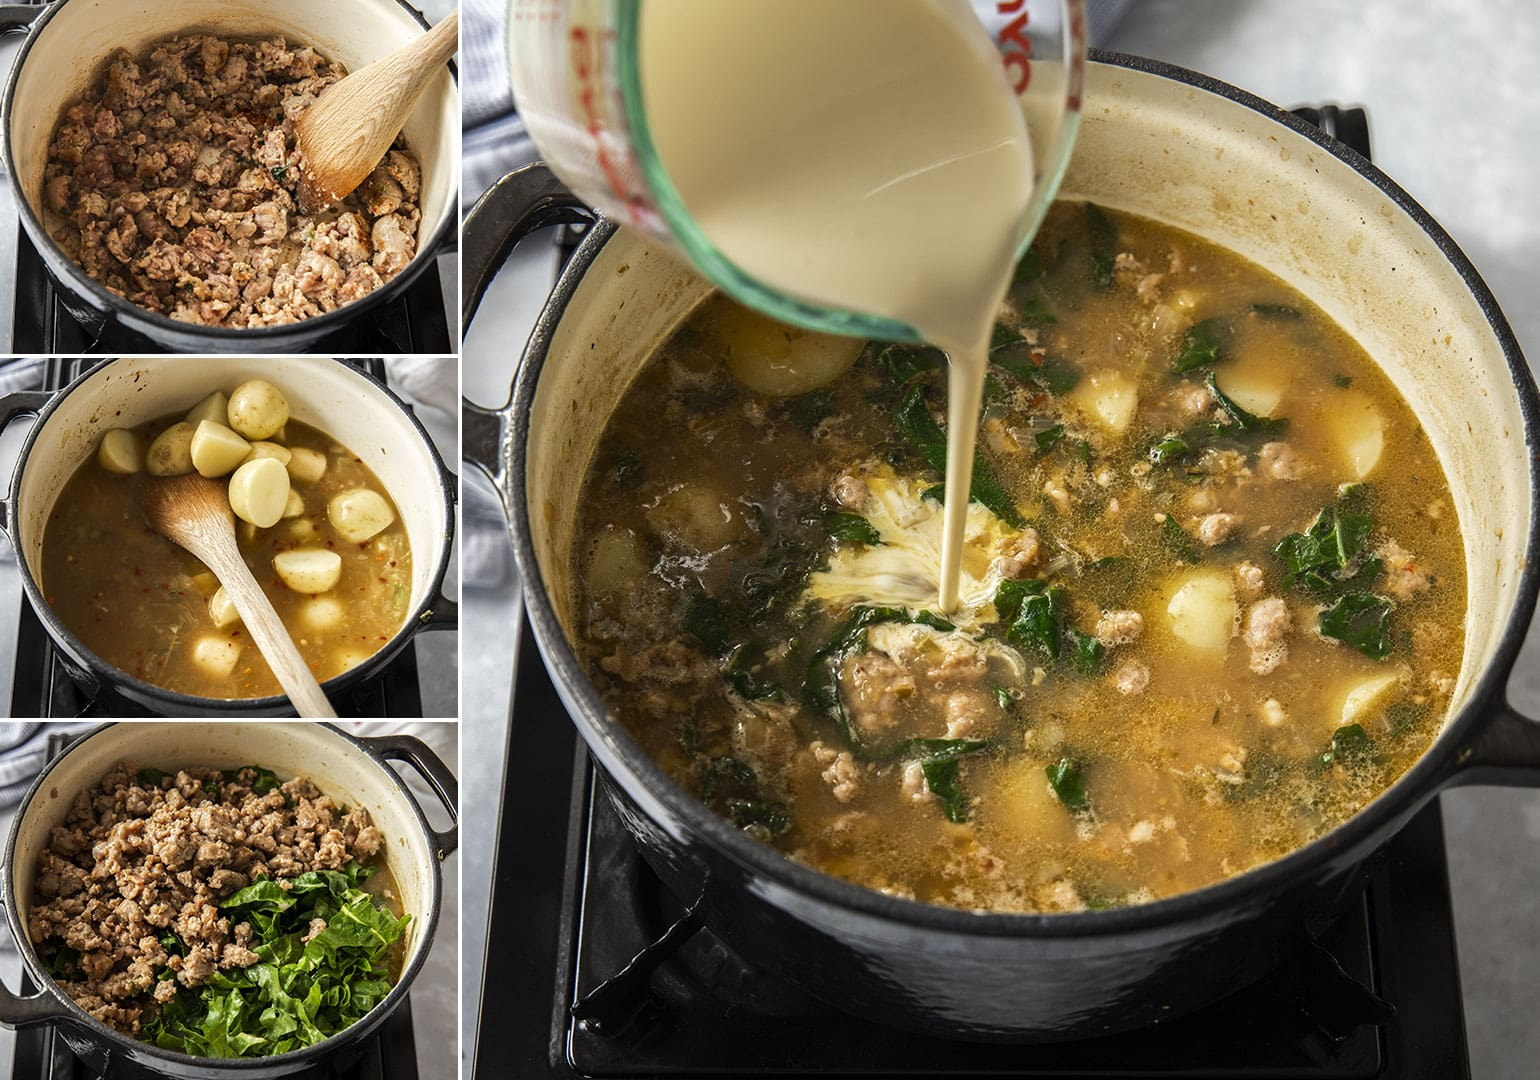 A collage of photos showing the steps to making zuppa toscana.